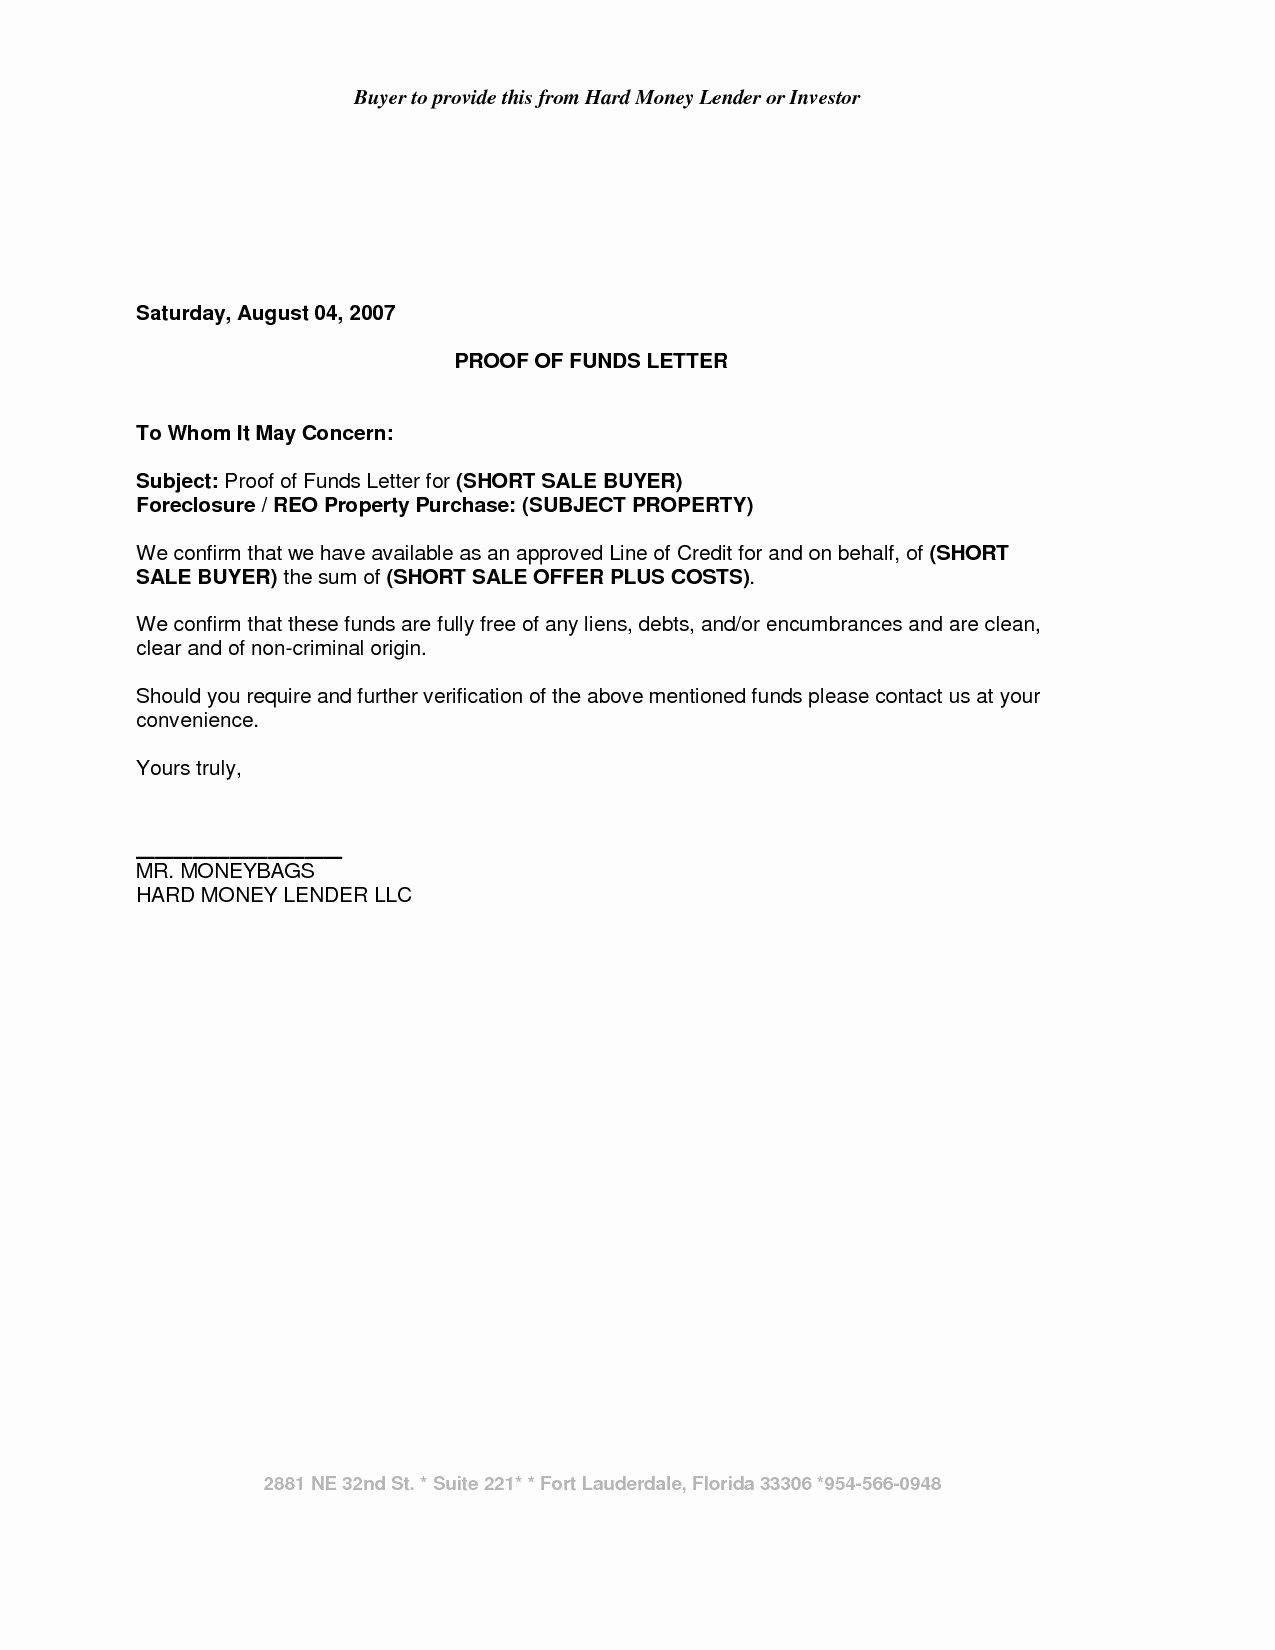 Proof Of Payment Letter Beautiful Vehicle Repossession Letter Template Samples